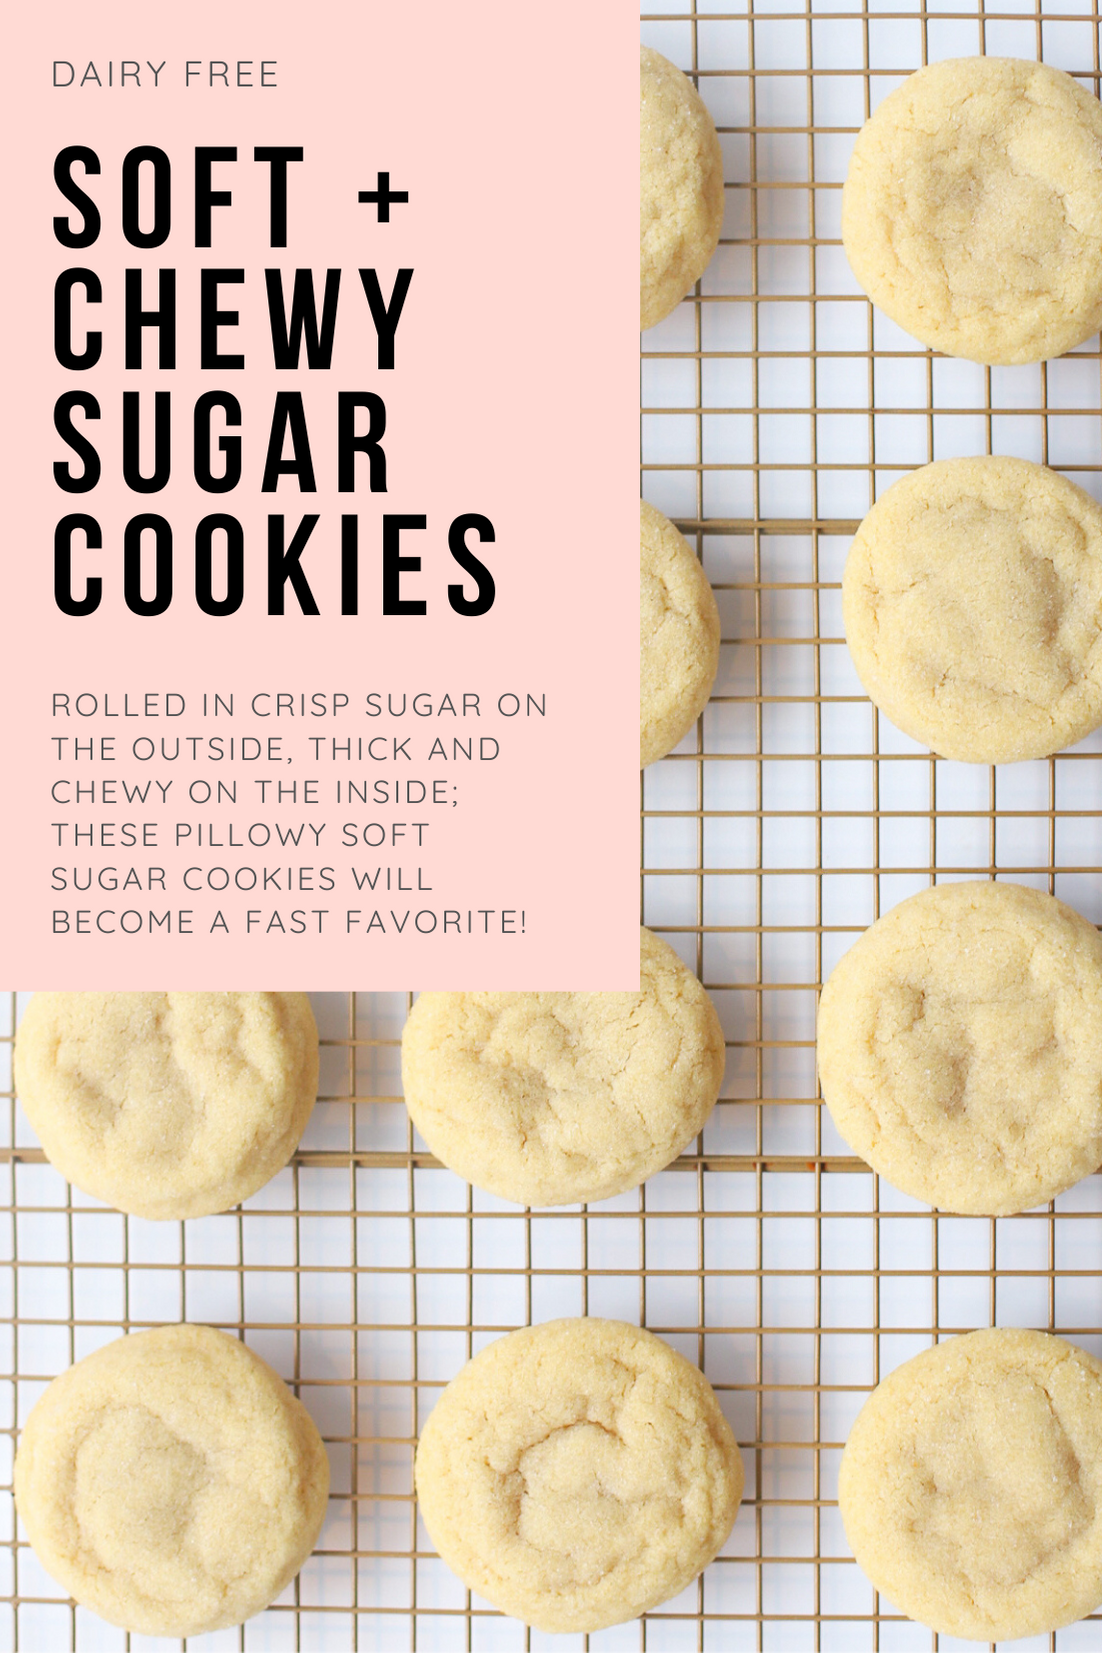 The best and most unbelievably perfect dairy free sugar cookies, rolled in crisp sugar on the outside, soft, thick, and chewy on the inside; these pillowy sugar cookies will quickly become your new favorite sugar cookie recipe! | @glitterinclexi | GLITTERINC.COM